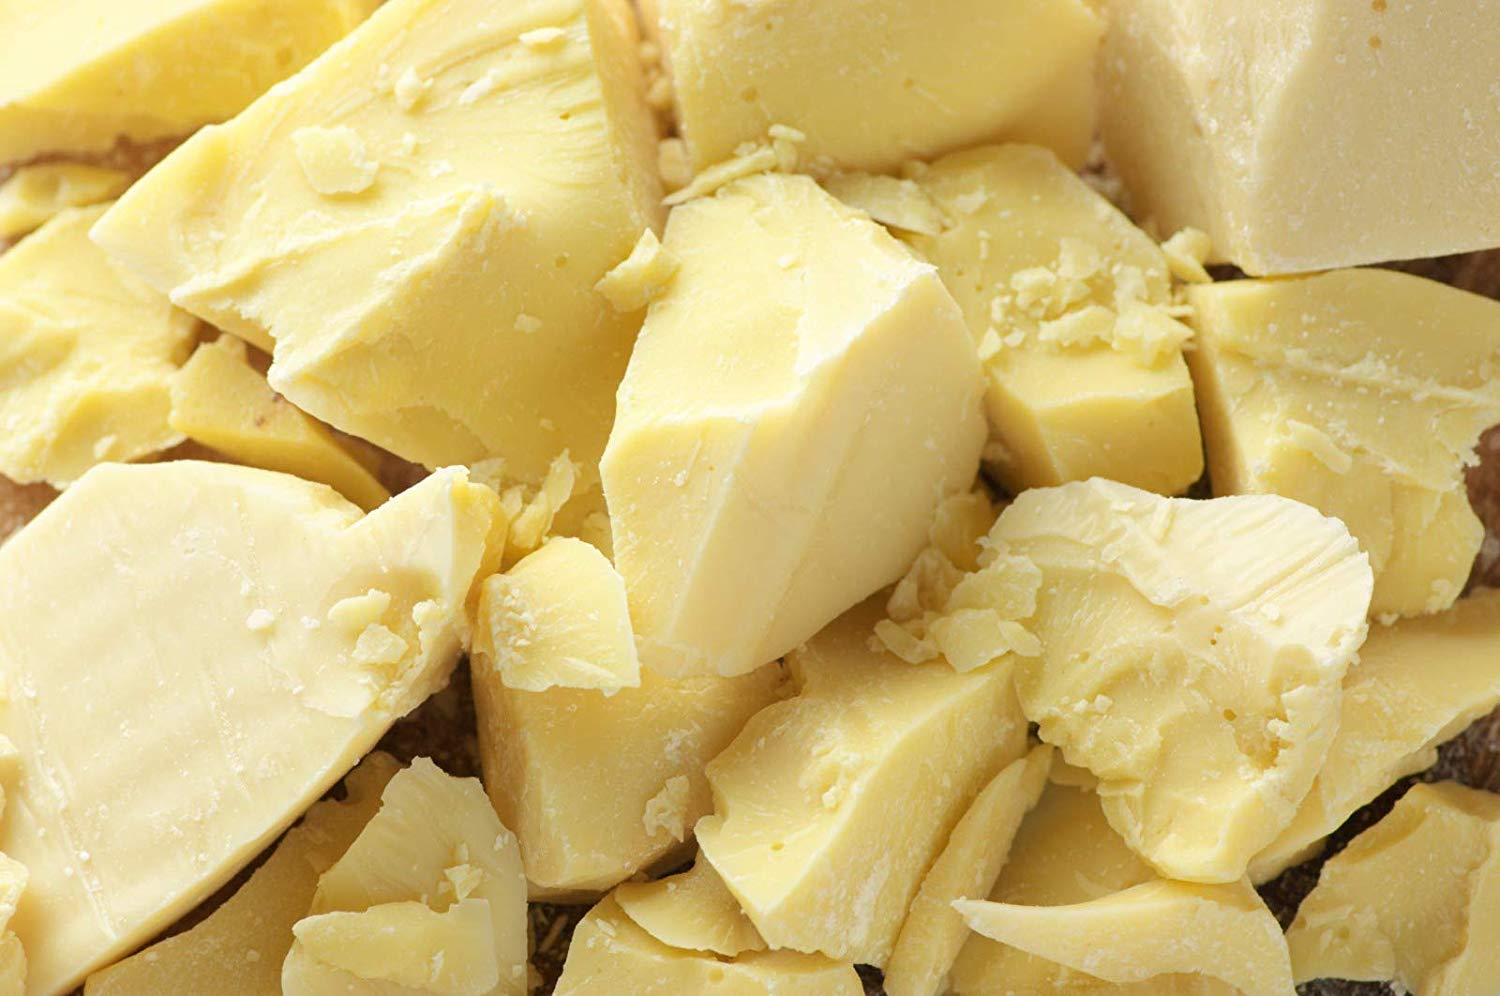 Raw Cocoa Butter - 1lb Fresh and Pure- Cacao Butter Non-Deodorized by Natural Farms